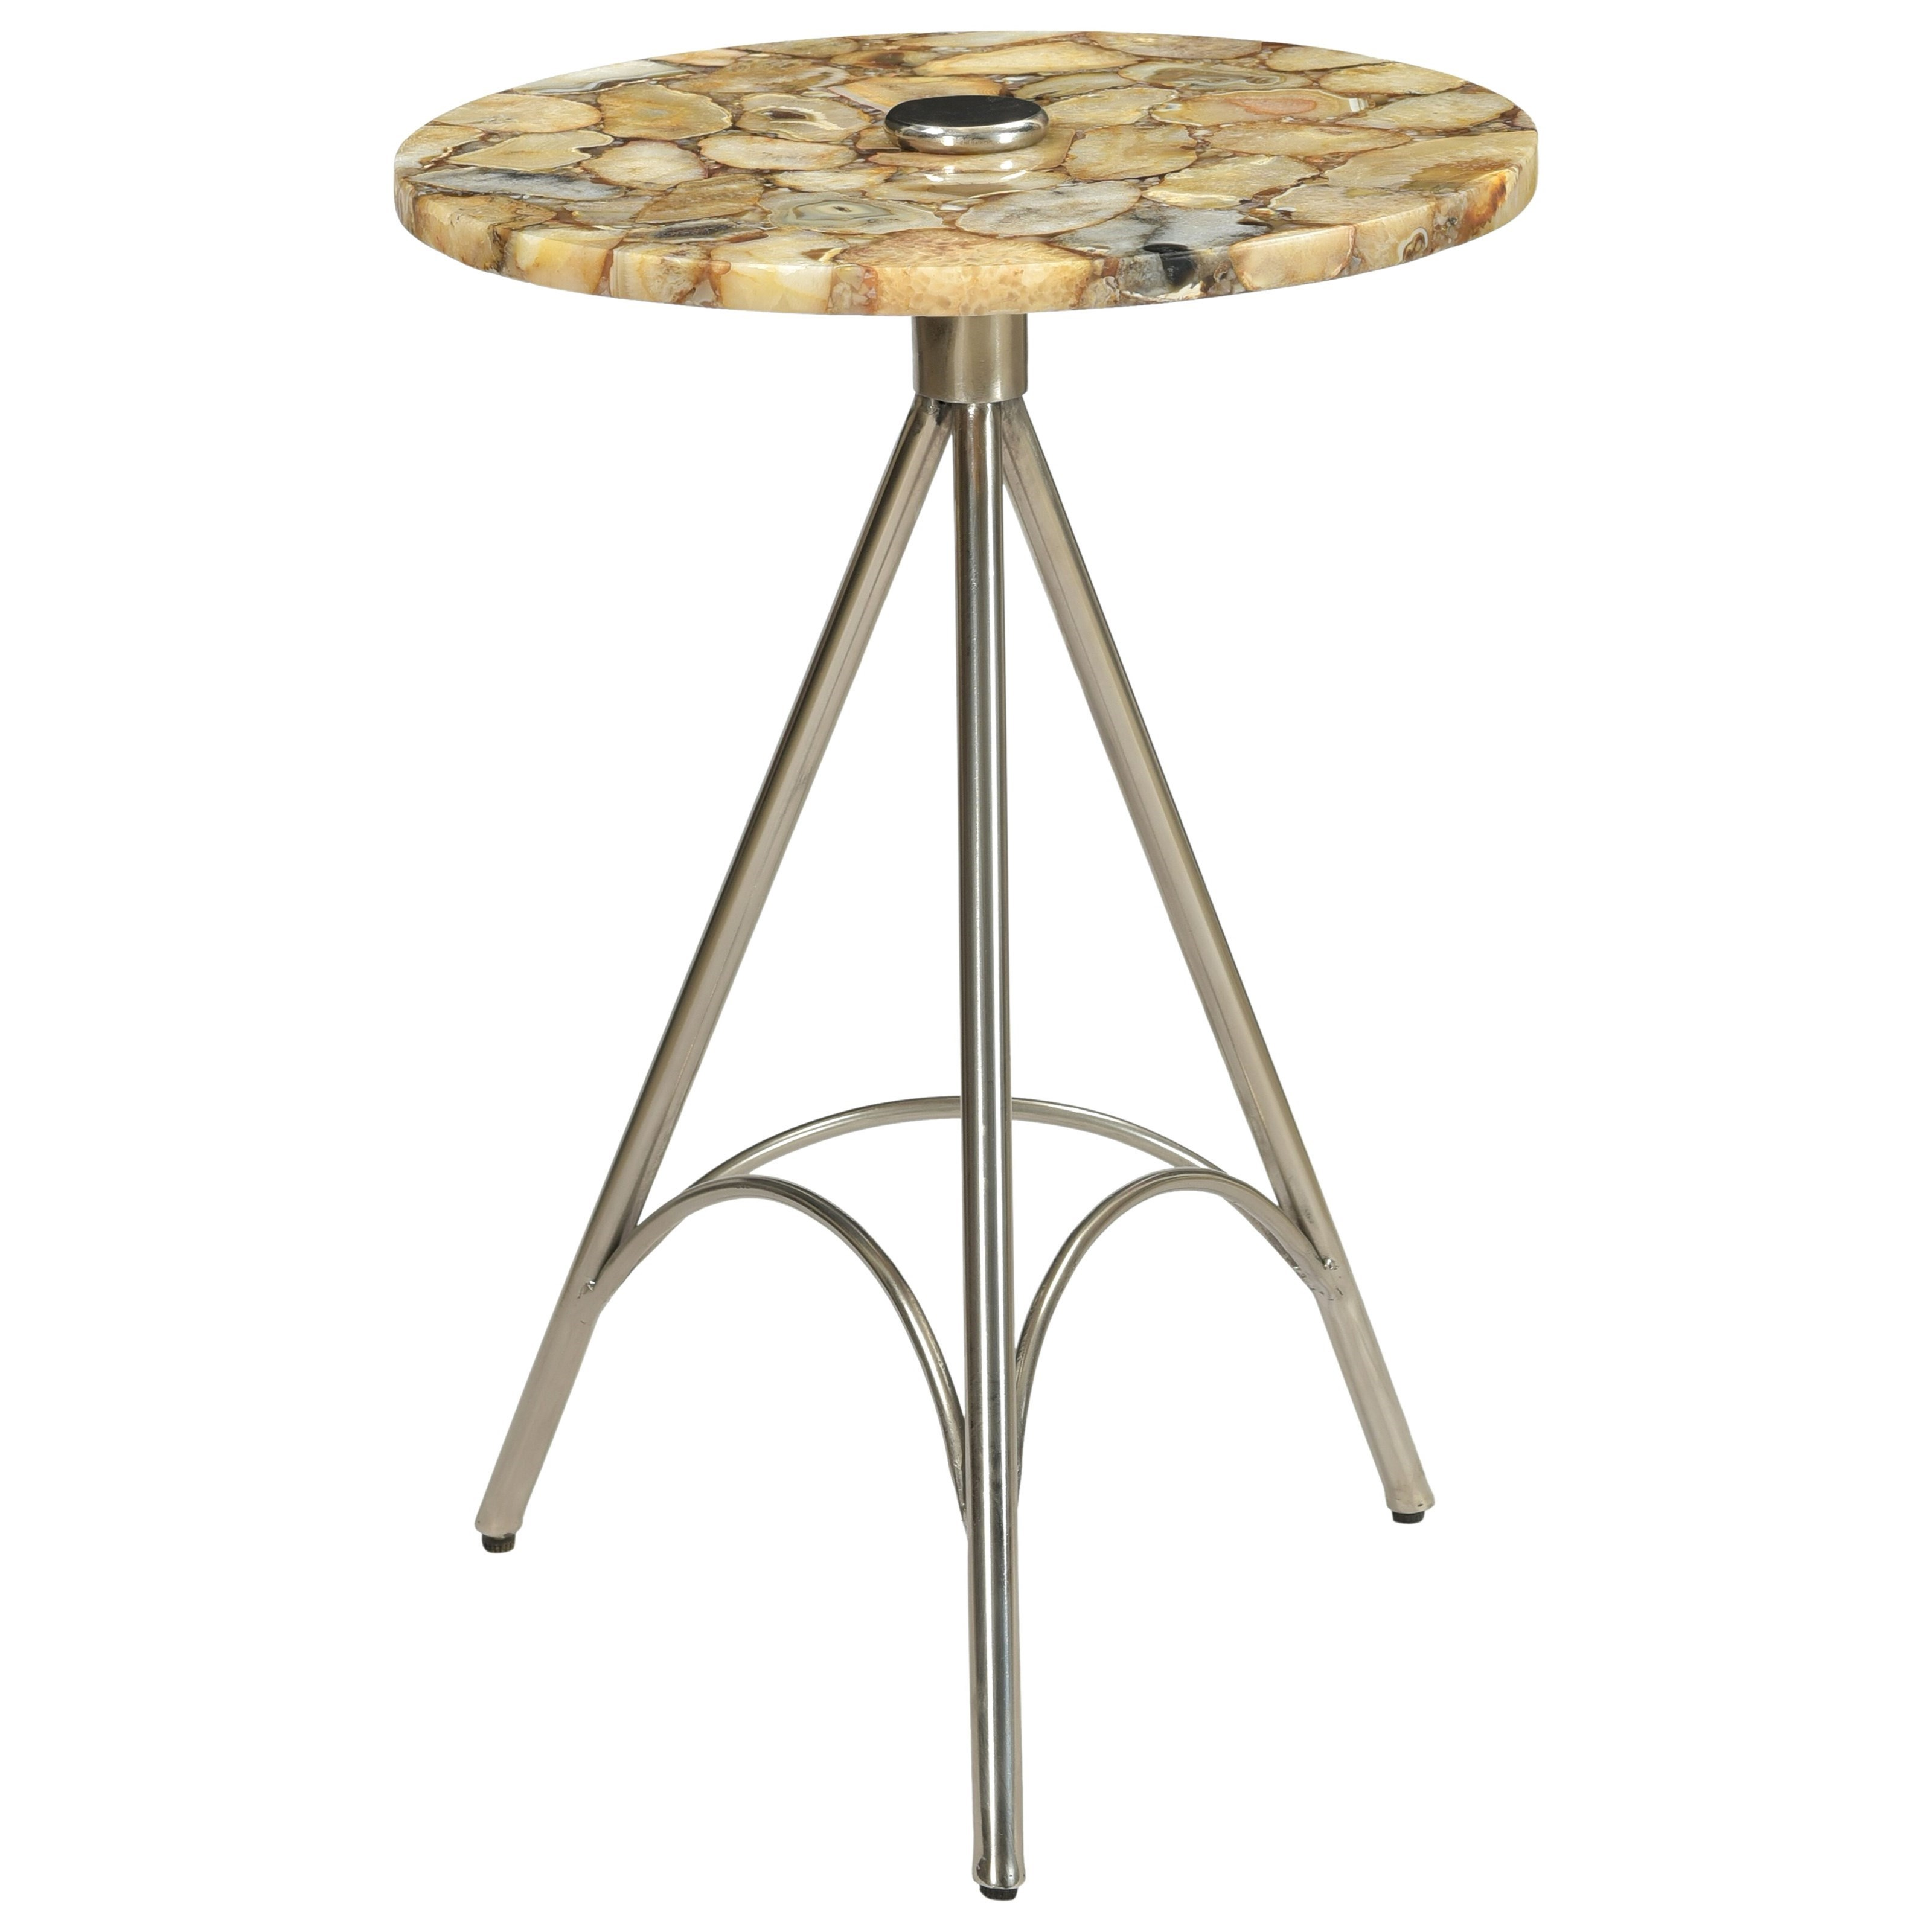 Coast to Coast Accents Round Accent Table by Coast to Coast Imports at Baer's Furniture